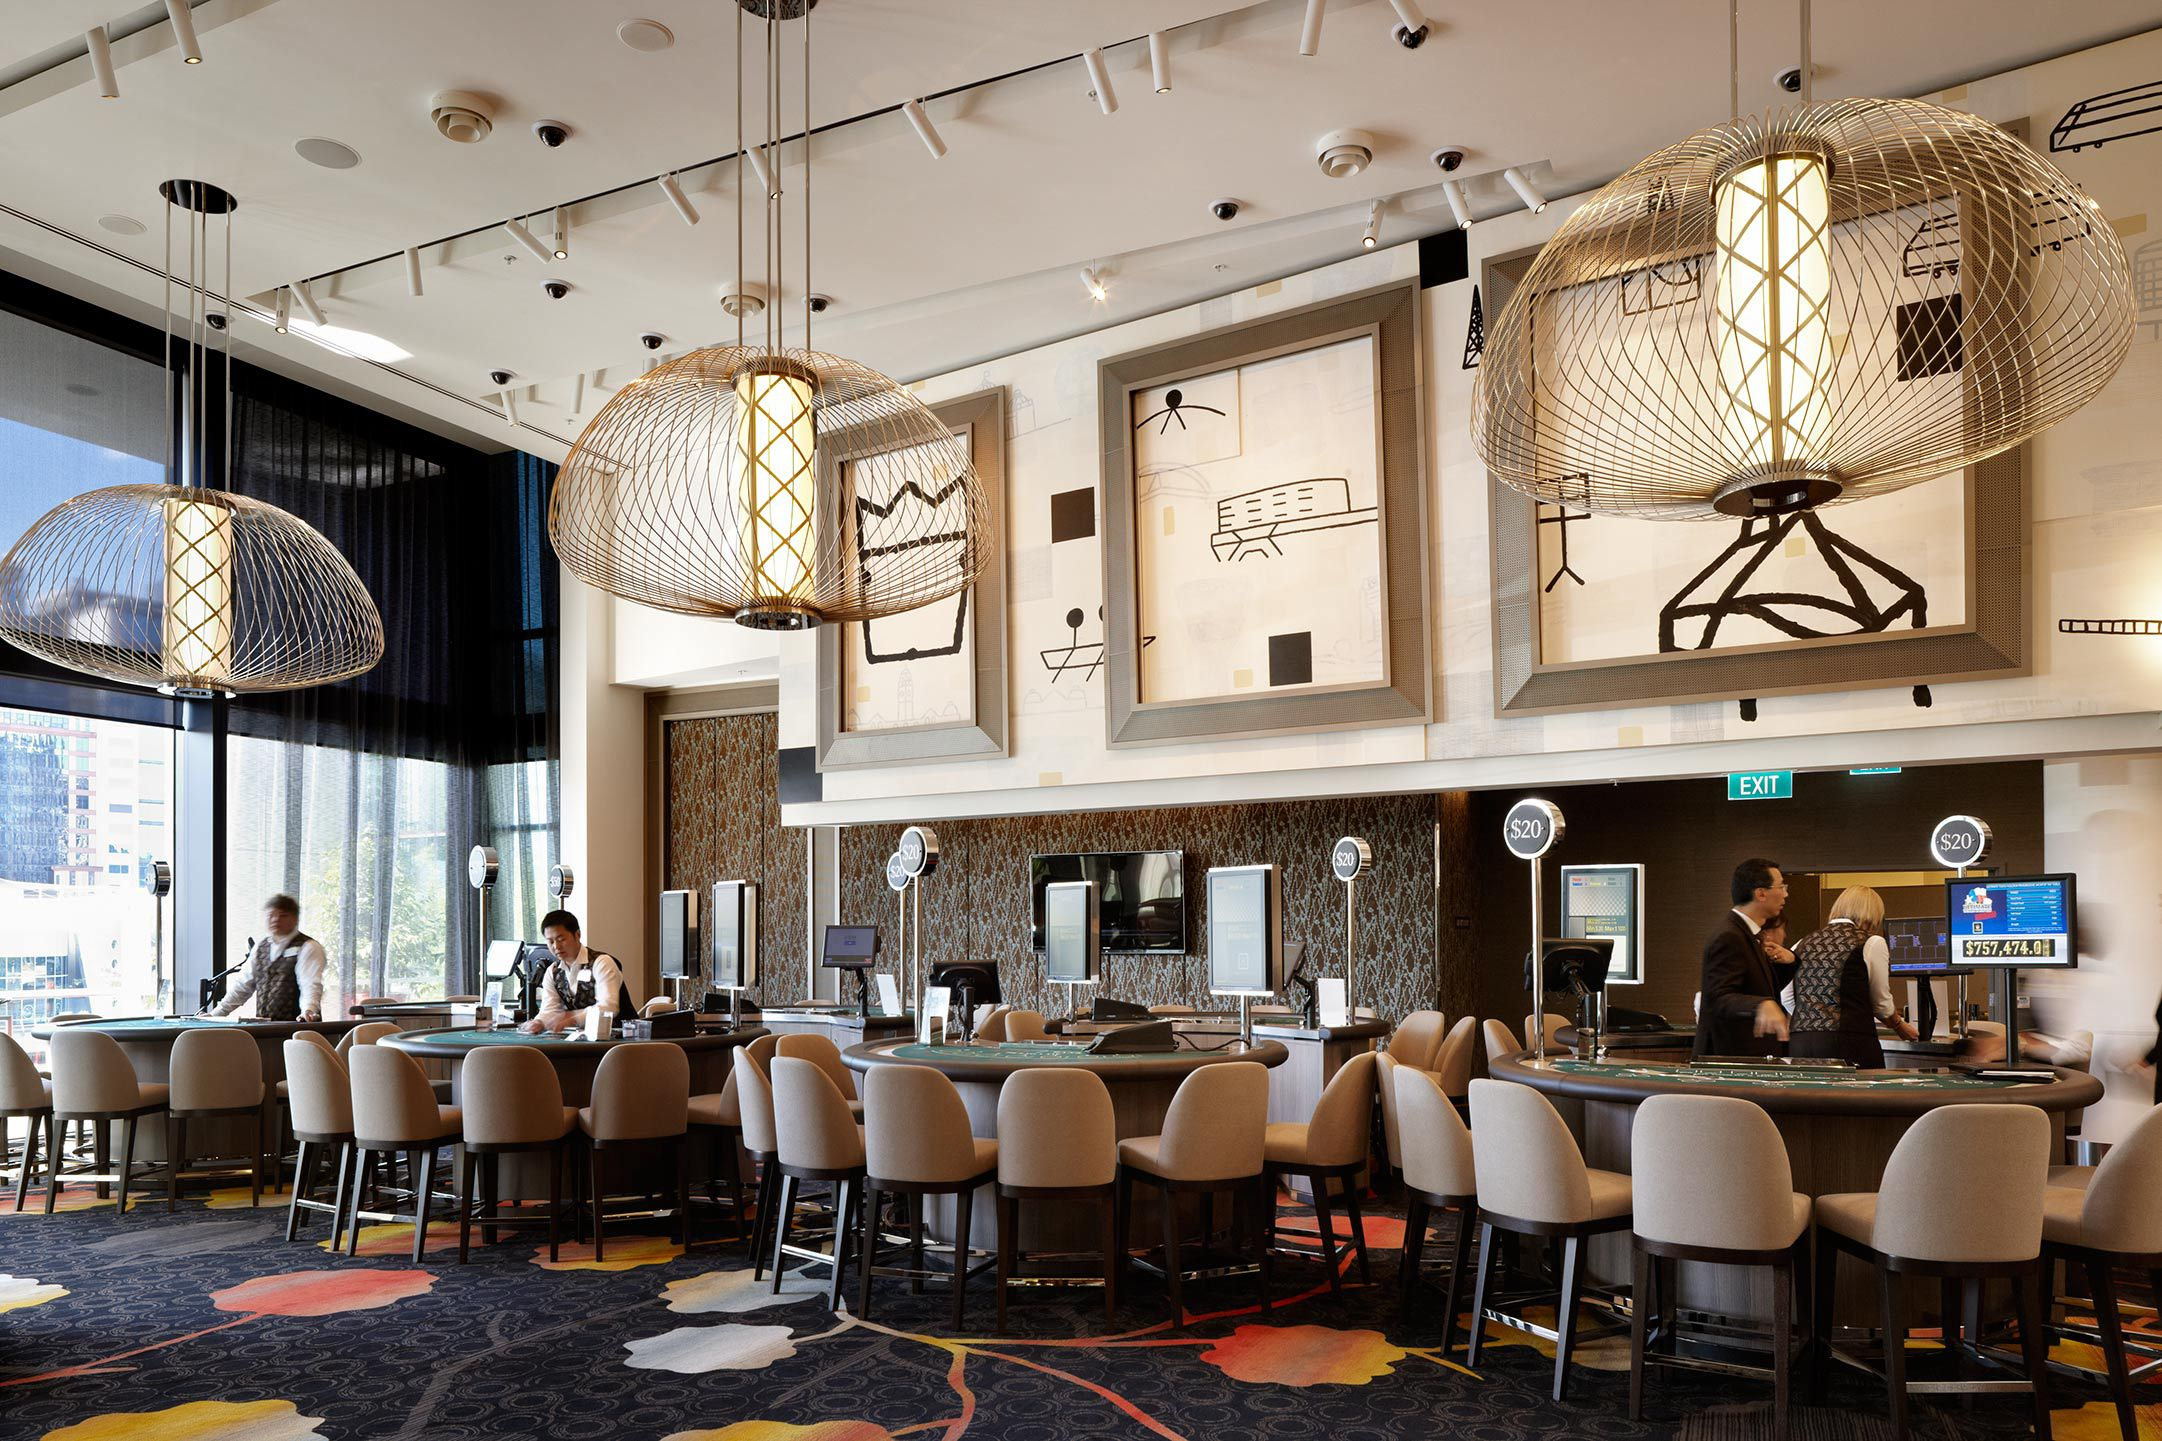 Pub crown casino melbourne